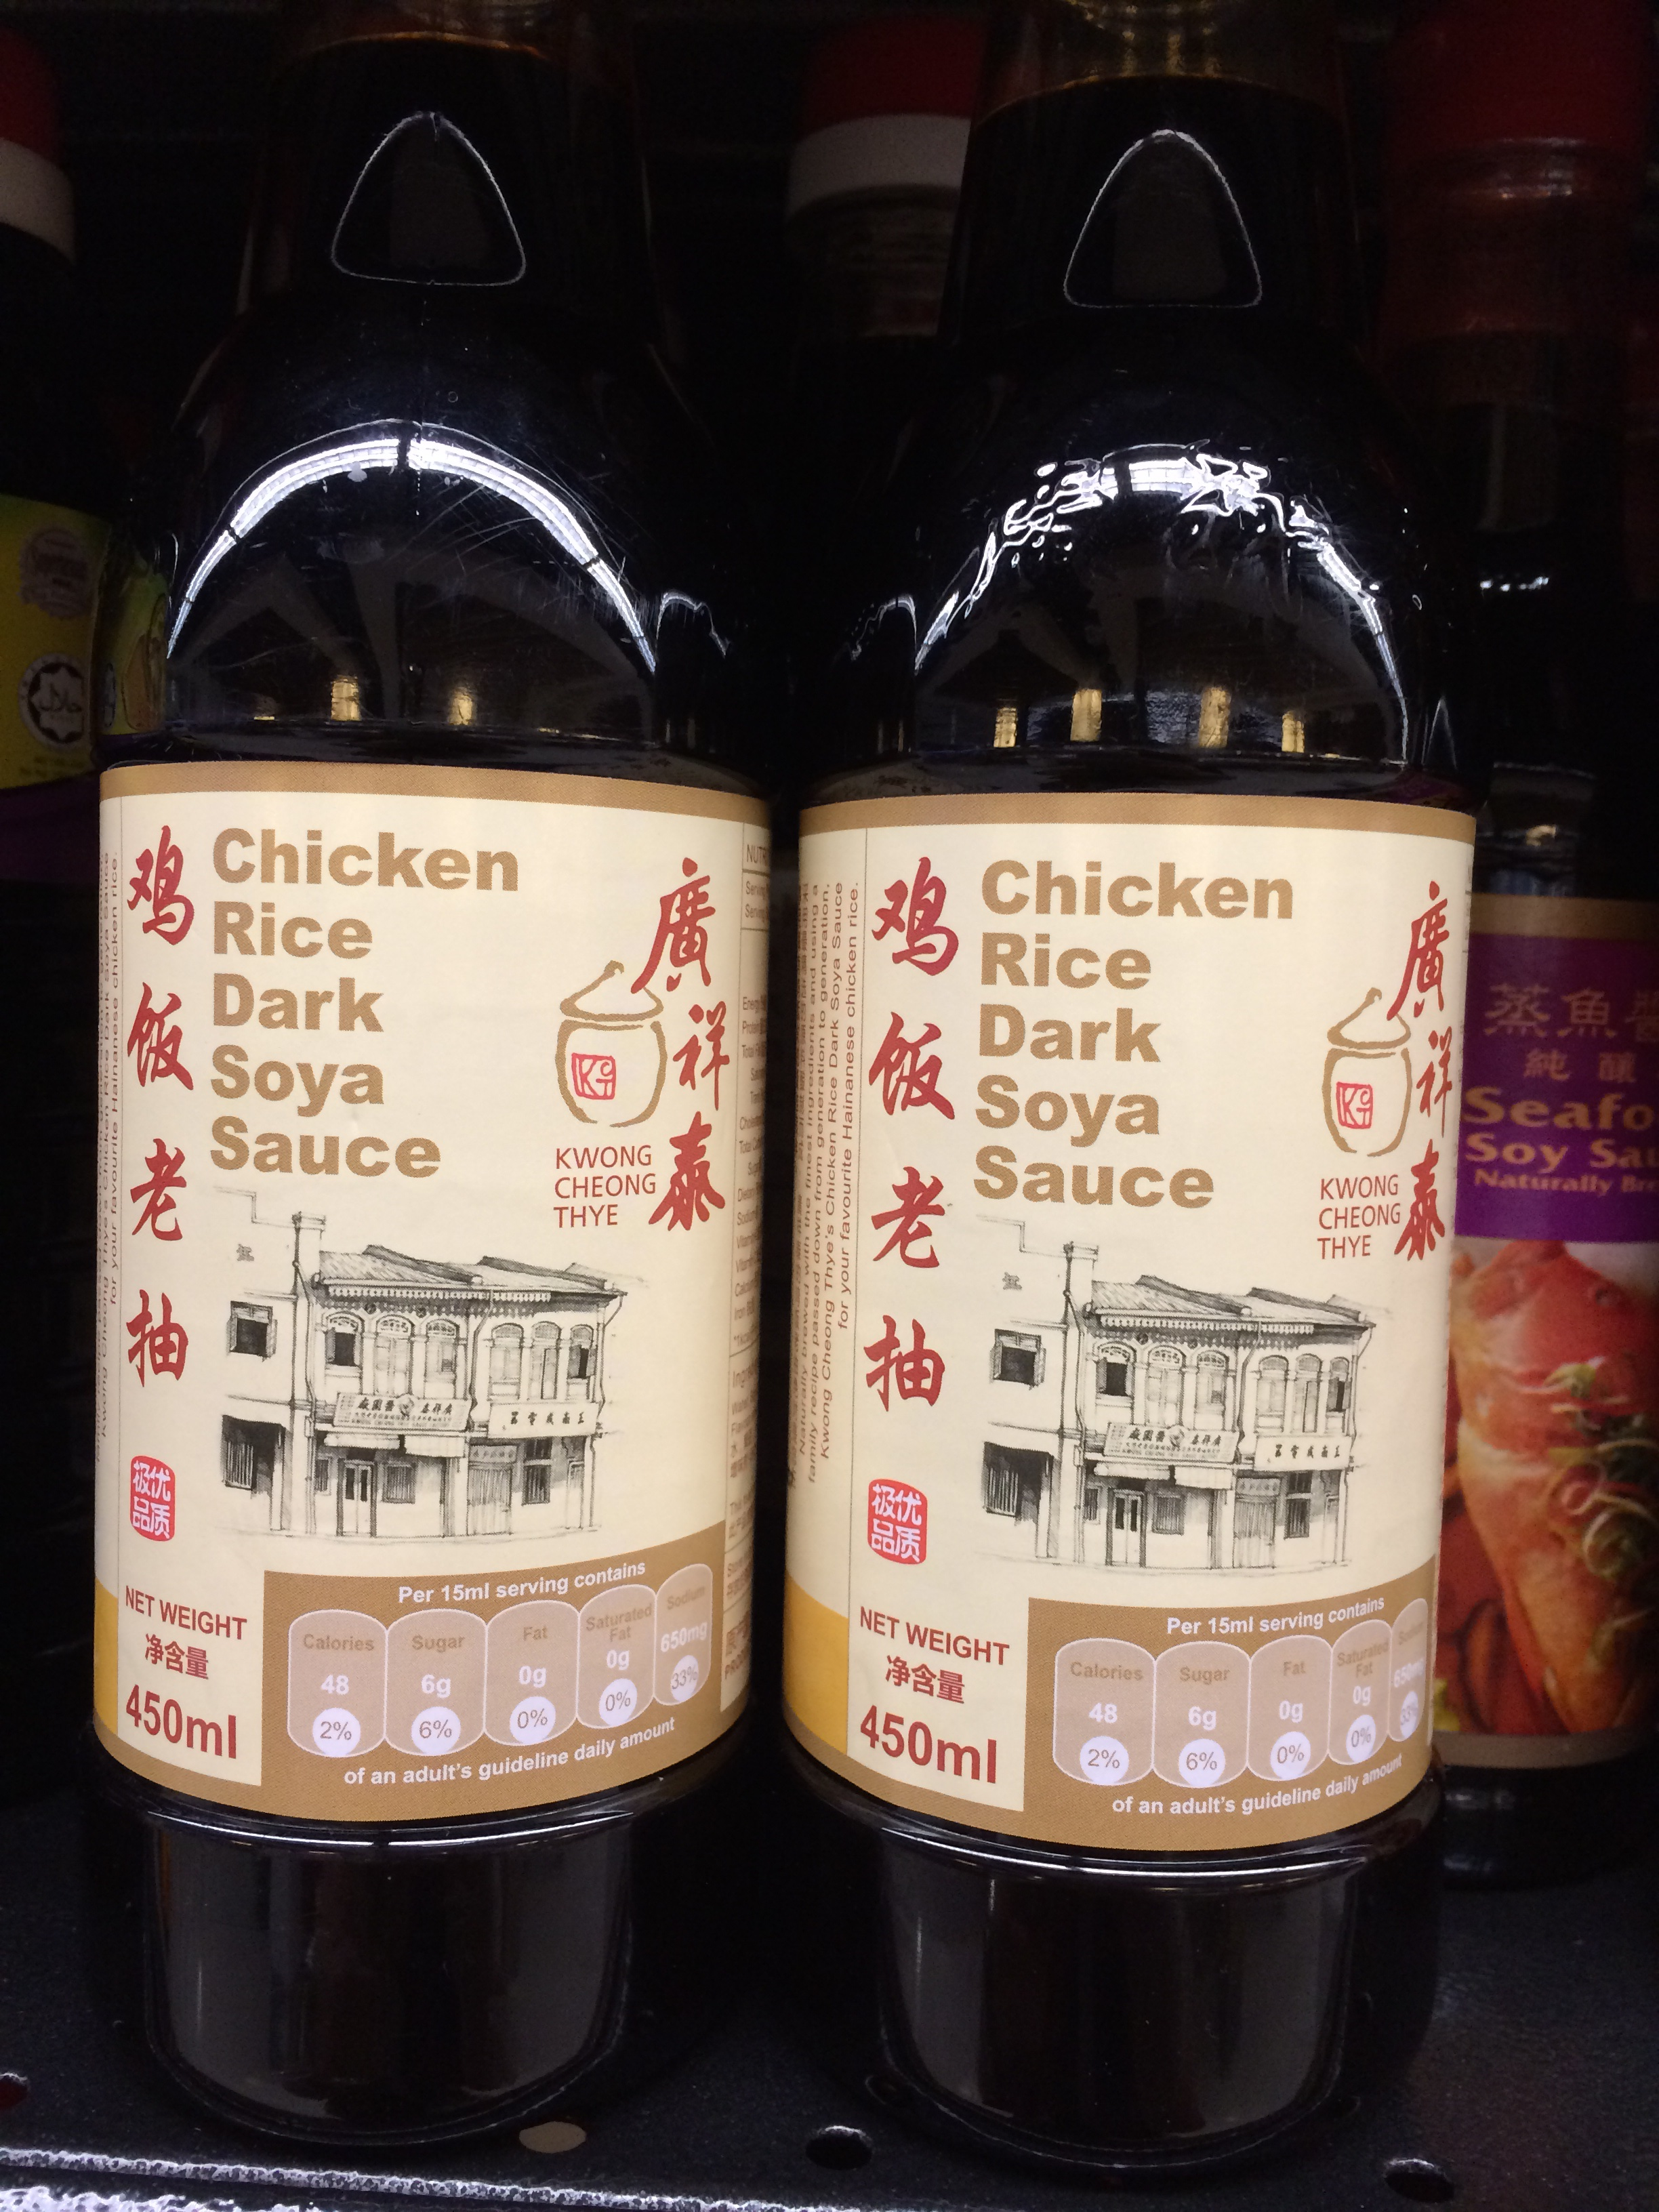 Kwong Cheong Thye Chicken Rice Dark Soya Sauce Is Fabulous With Chicken Rice Or Any Dark Soya Sauce Recipes These Are My Chicken Rice Twins